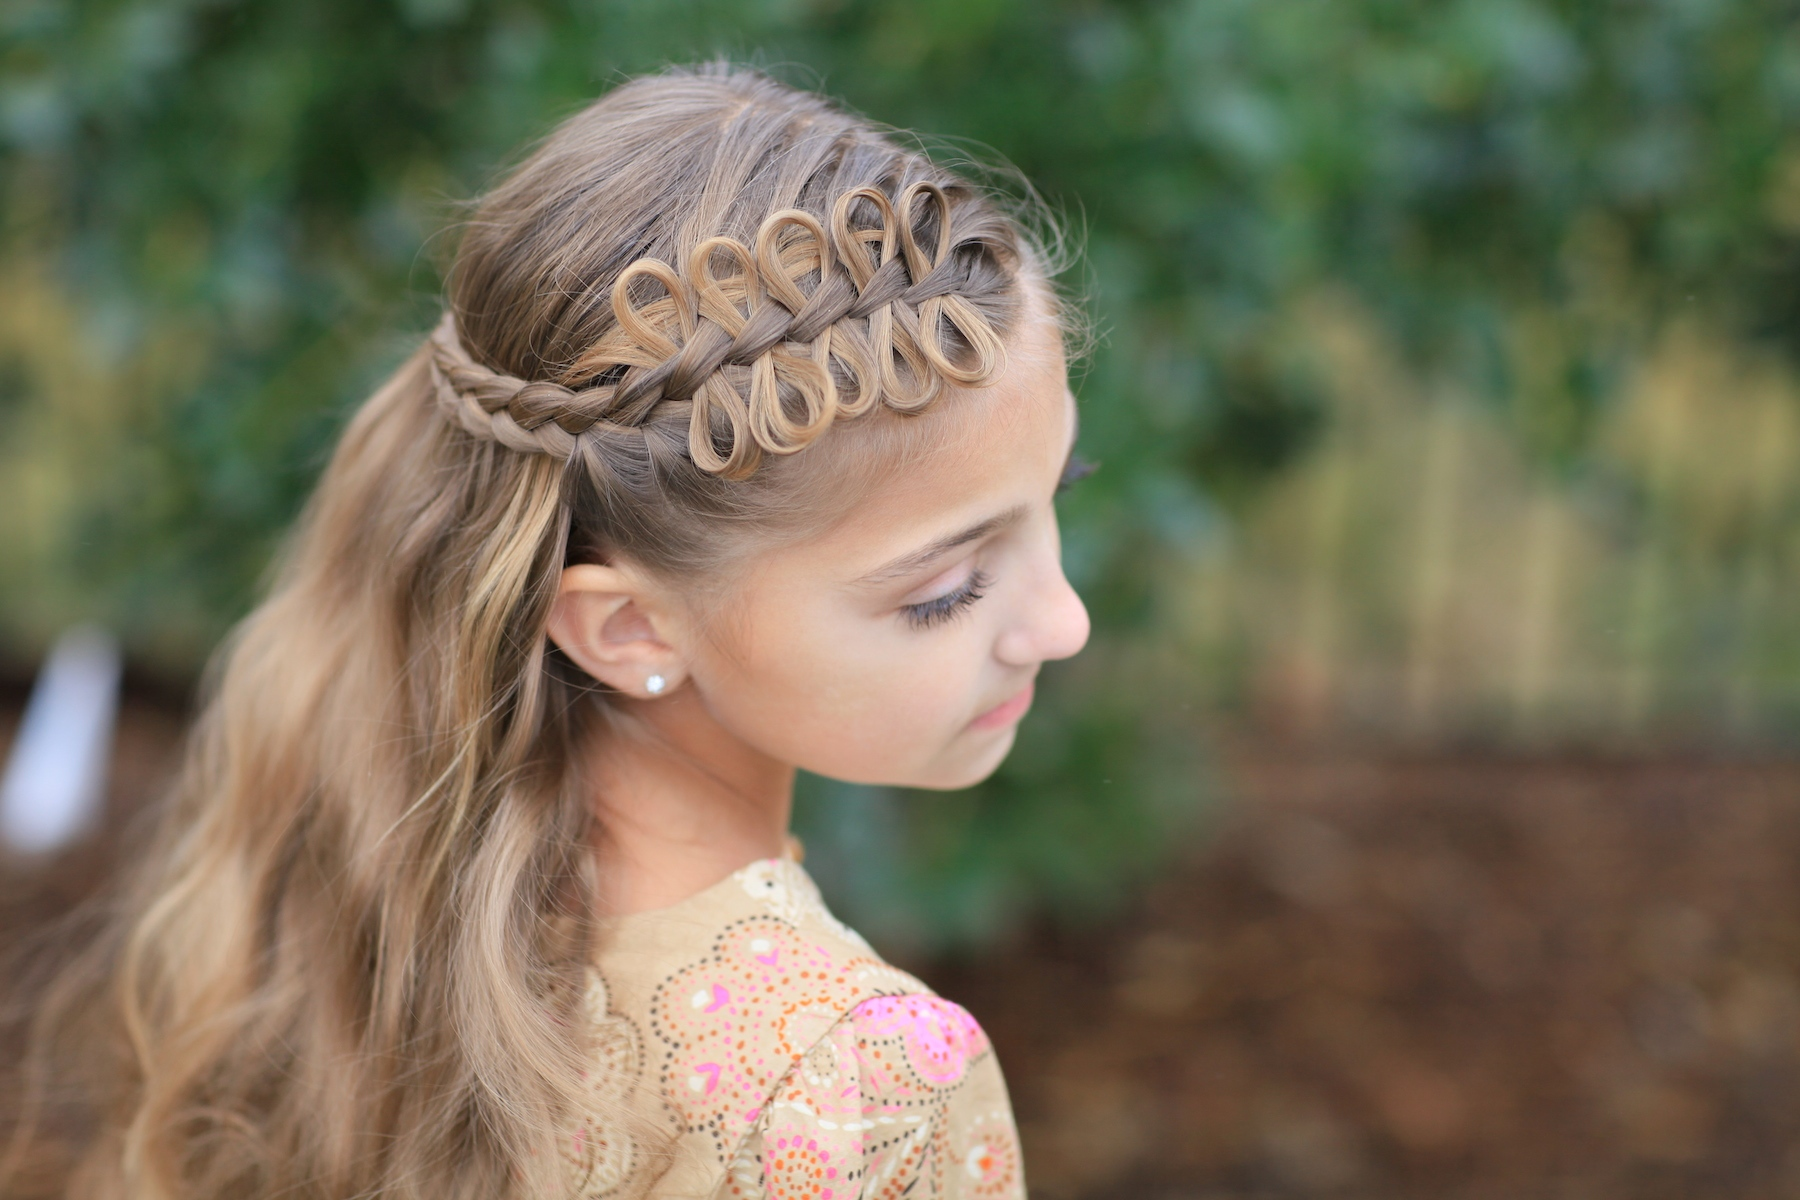 Adorable Hairstyles Little Girls Kids Gallore